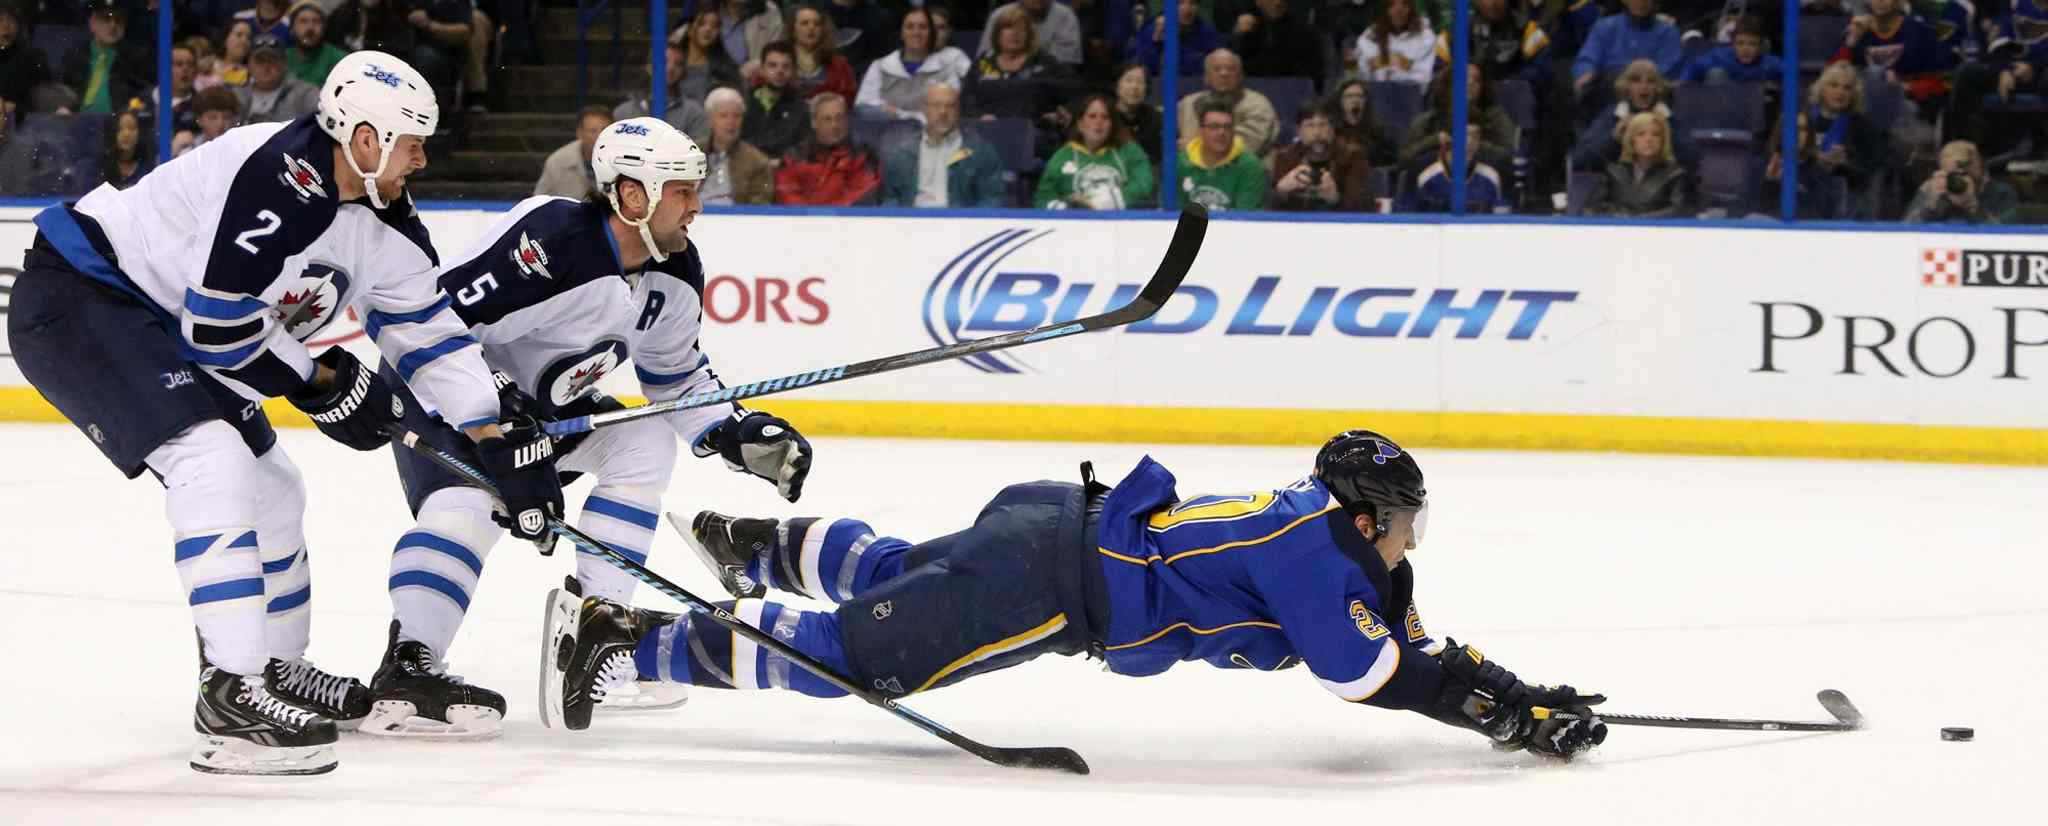 Blues left-winger Alexander Steen is knocked down from behind by Jets defenceman Mark Stuart (5) as he rushes the net in first-period action.